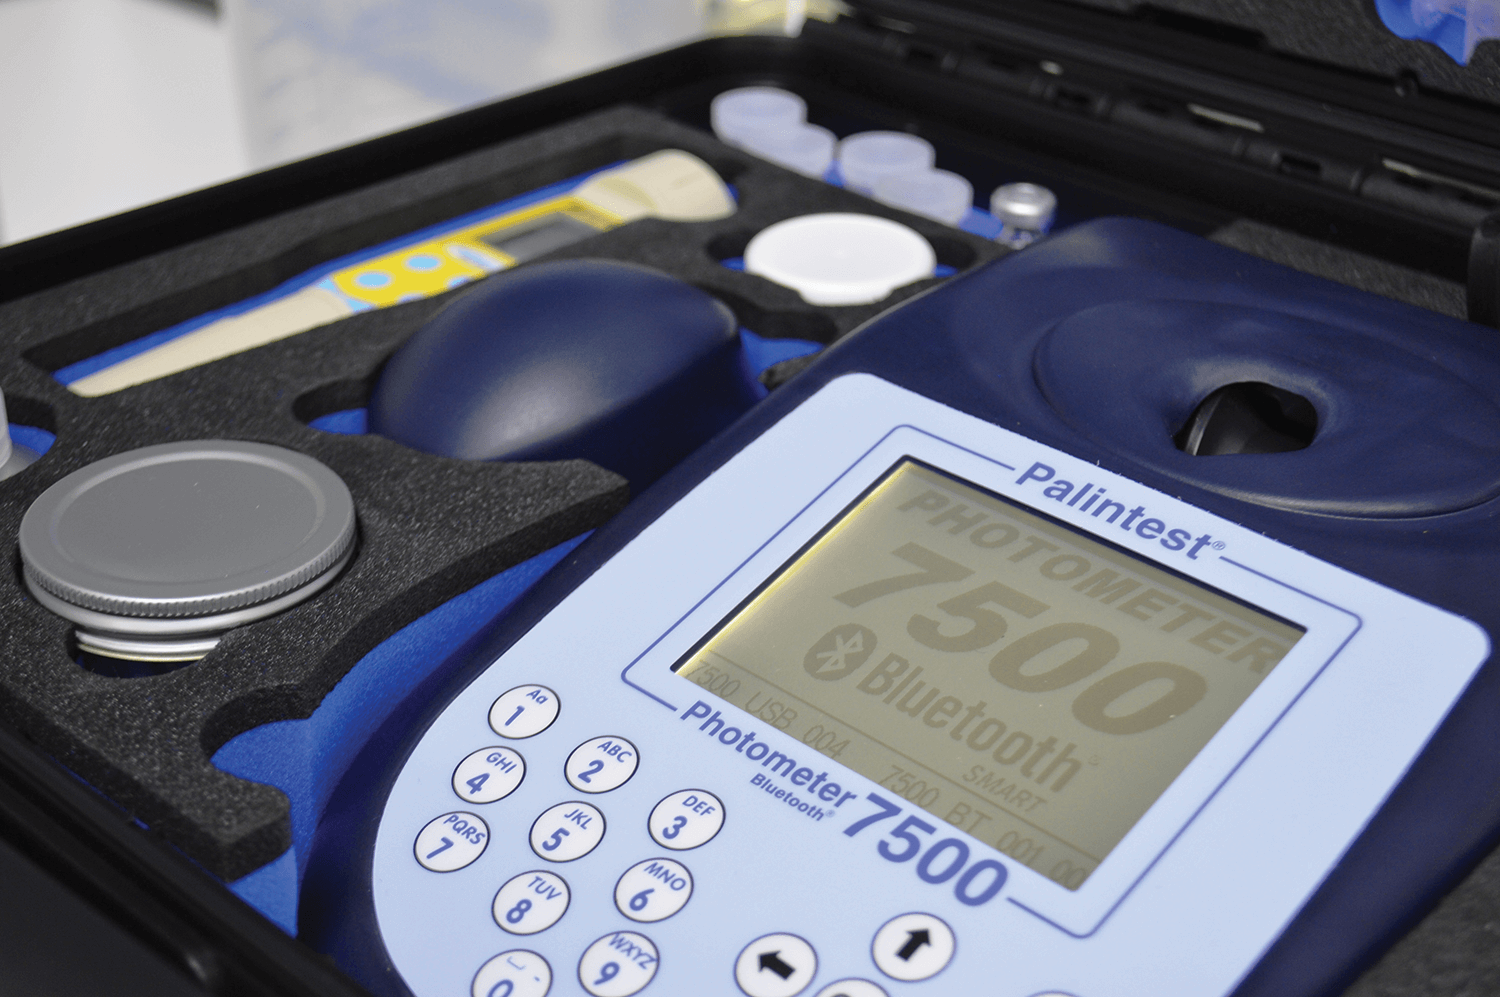 Webinar: Best practice tips for using your Palintest Photometer